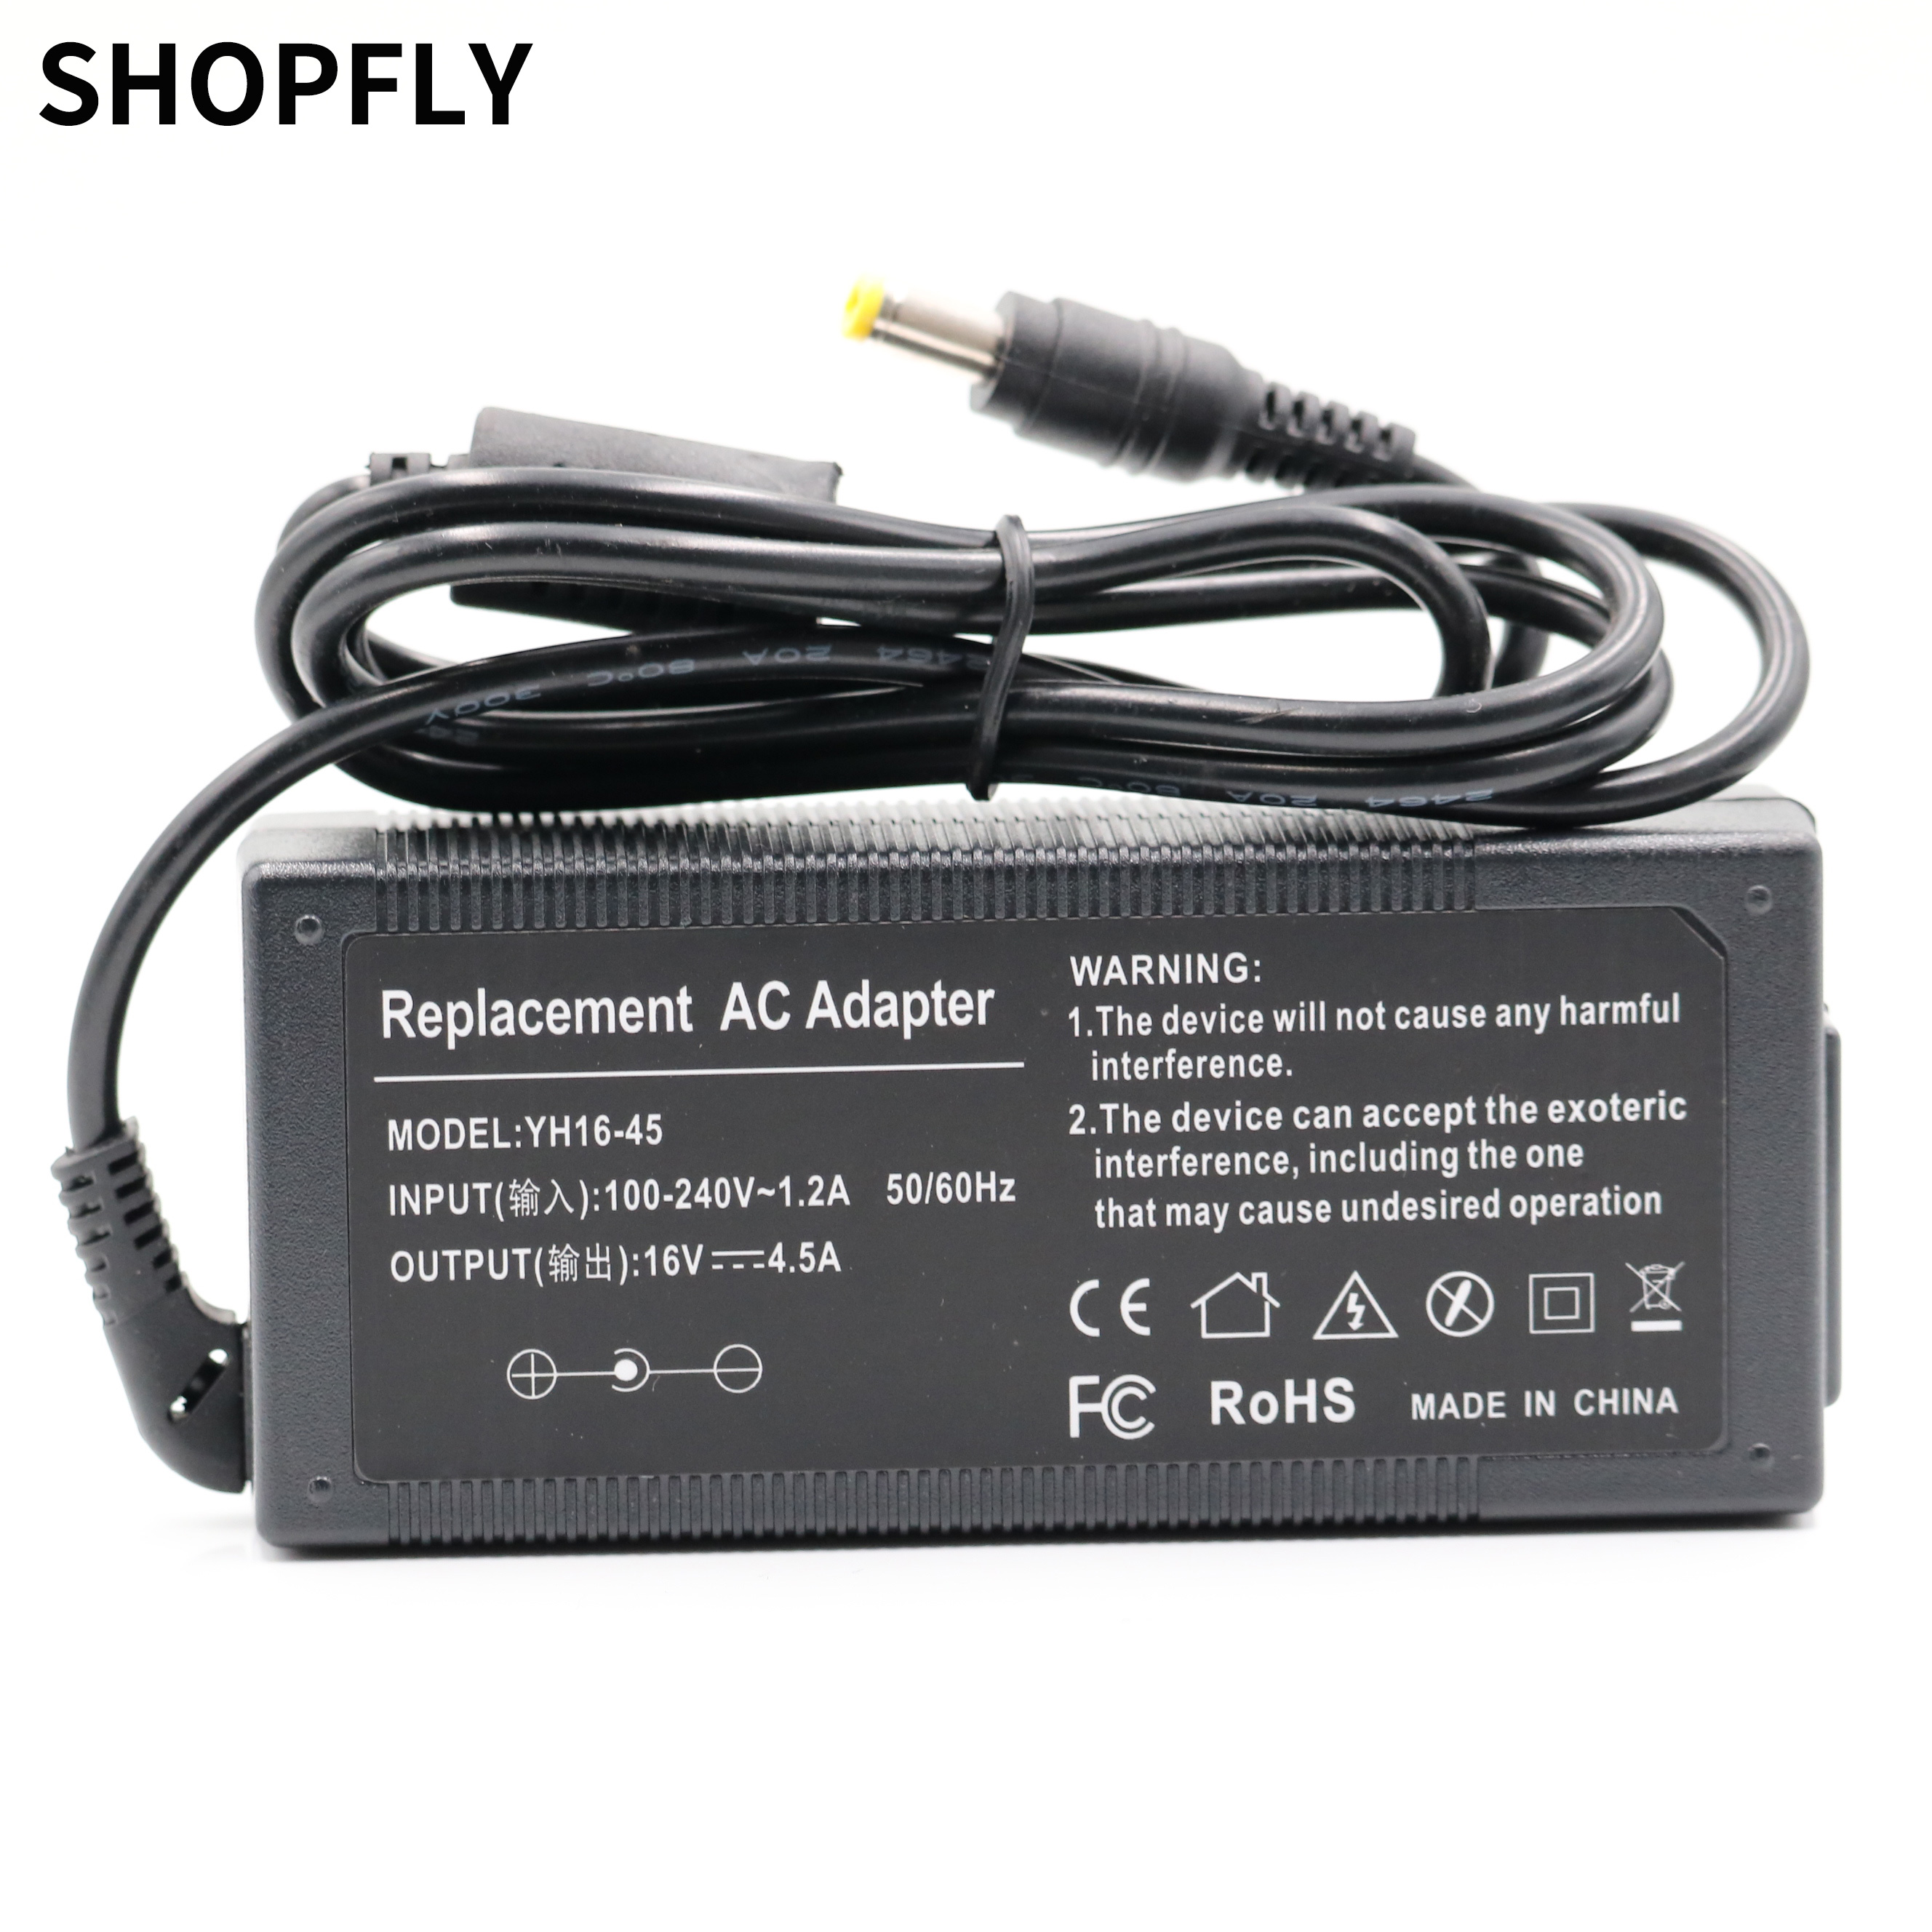 AC Adapter Charger For IBM ThinkPad T40 T41 T42 T43 08K8204 08K8205 16V 4.5A 72W 5.5*2.5mm Power Supply